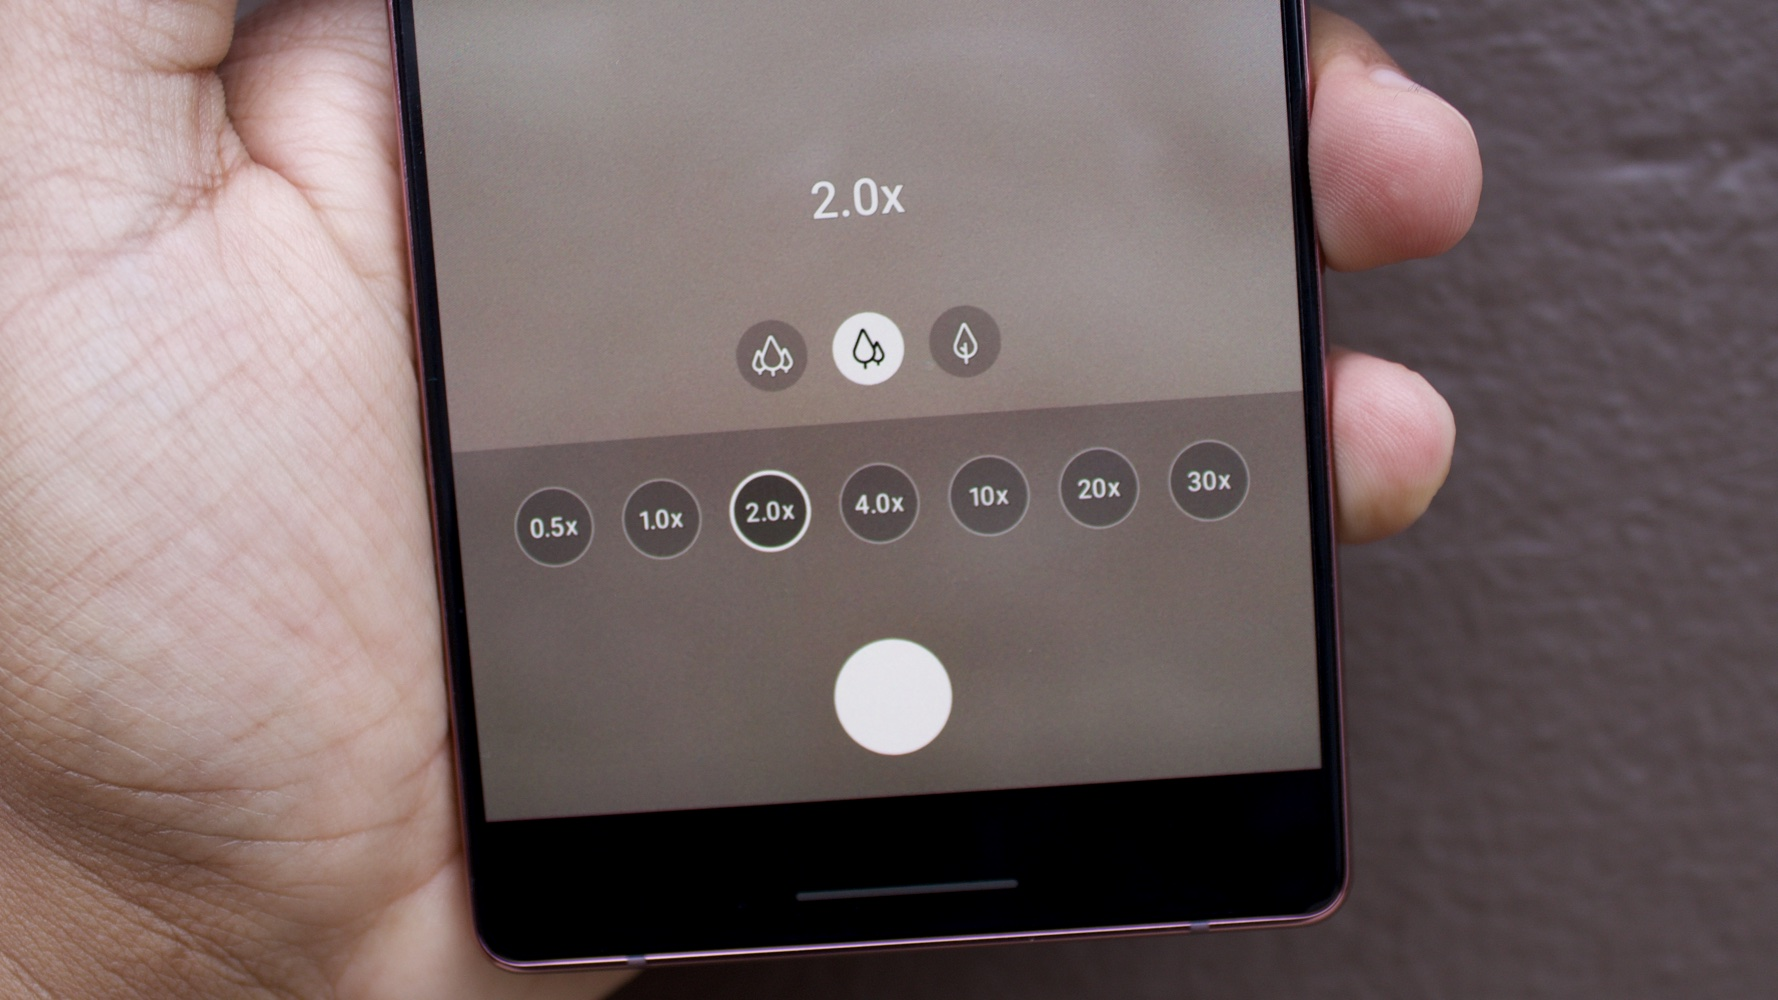 Interface de zoom do Galaxy Note 20 Ultra